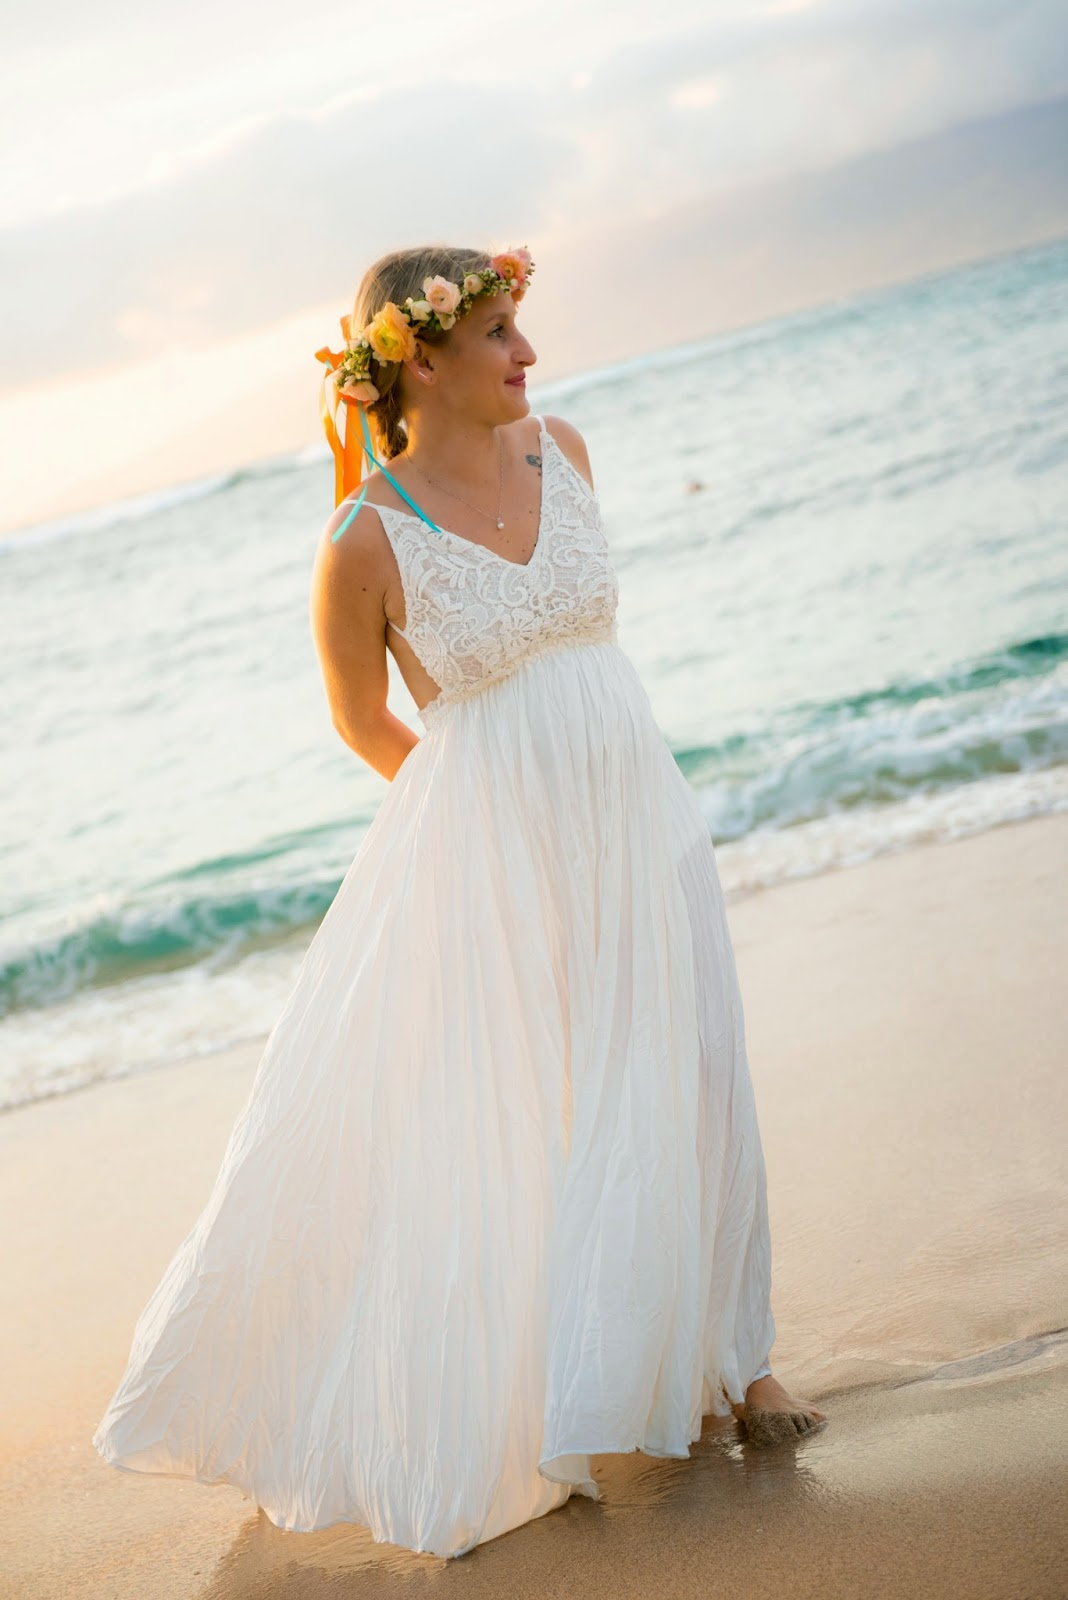 maui weddings, maui wedding planners, maui wedding photographers, marry me maui